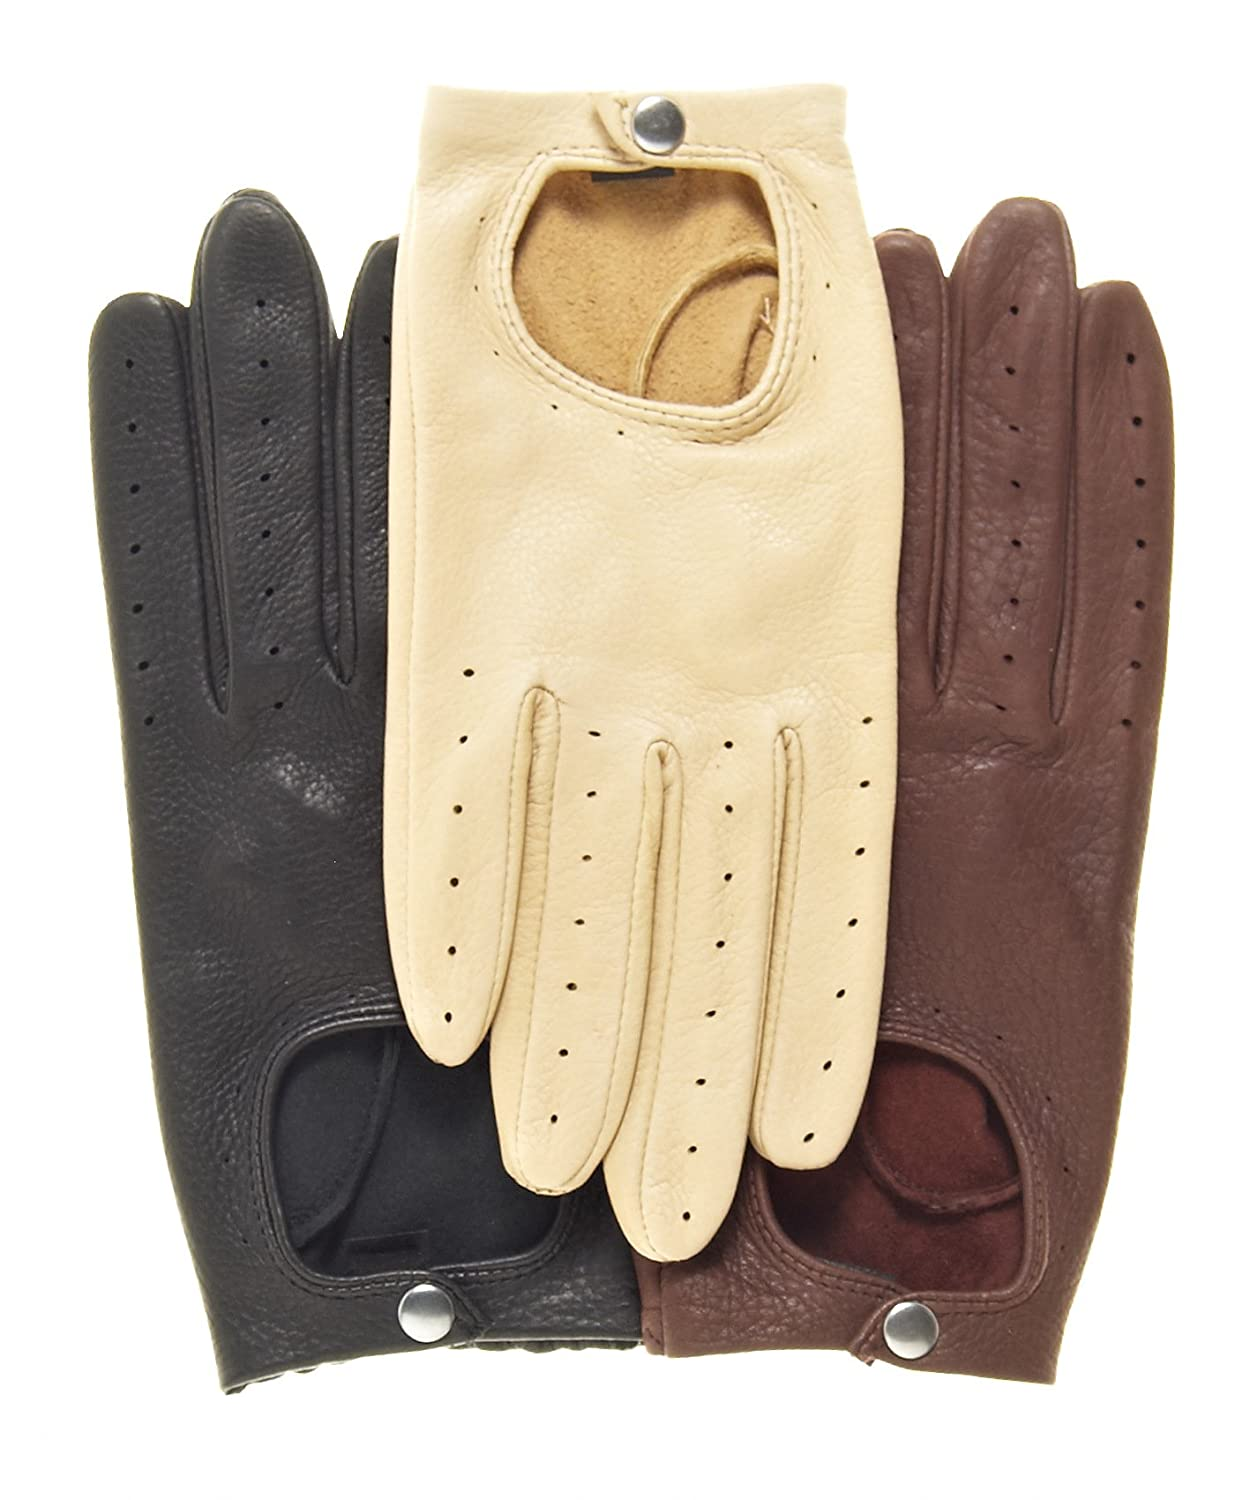 Yellow leather driving gloves - Pratt And Hart Women S Deerskin Leather Driving Gloves Size S Color Black At Amazon Women S Clothing Store Cold Weather Gloves